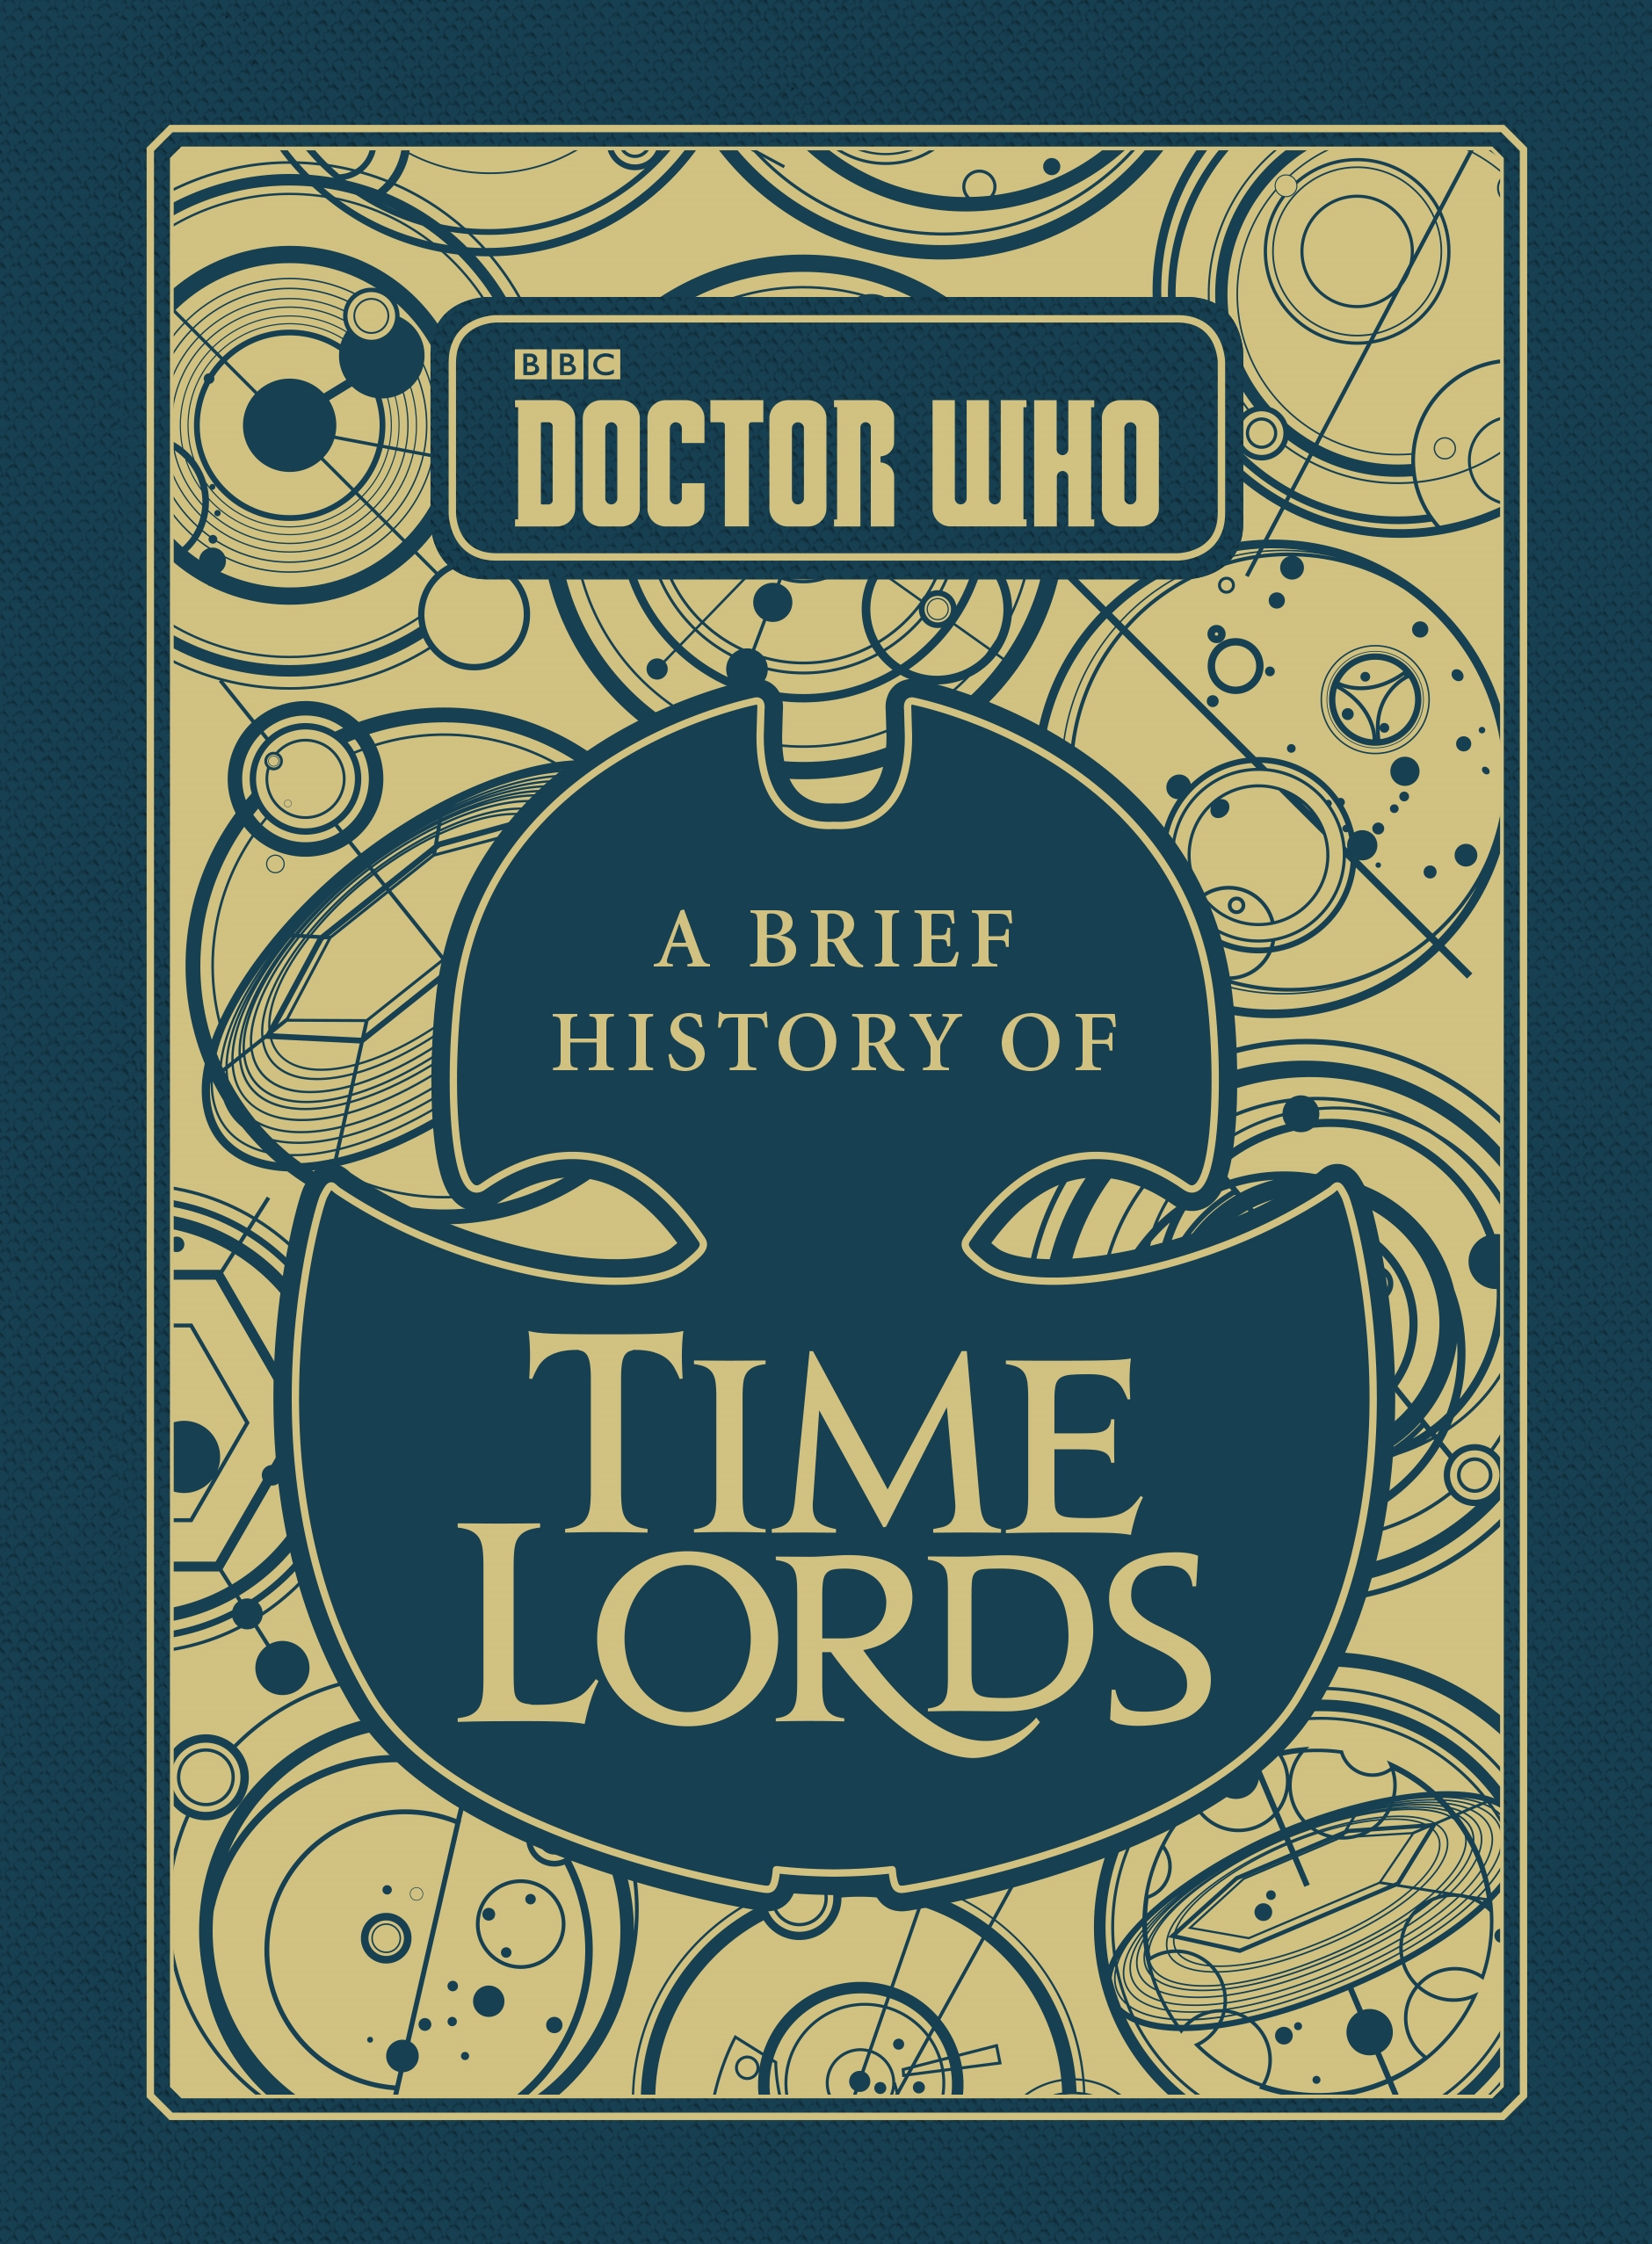 Doctor Who: A Brief History of Time Lords by Steve Tribe